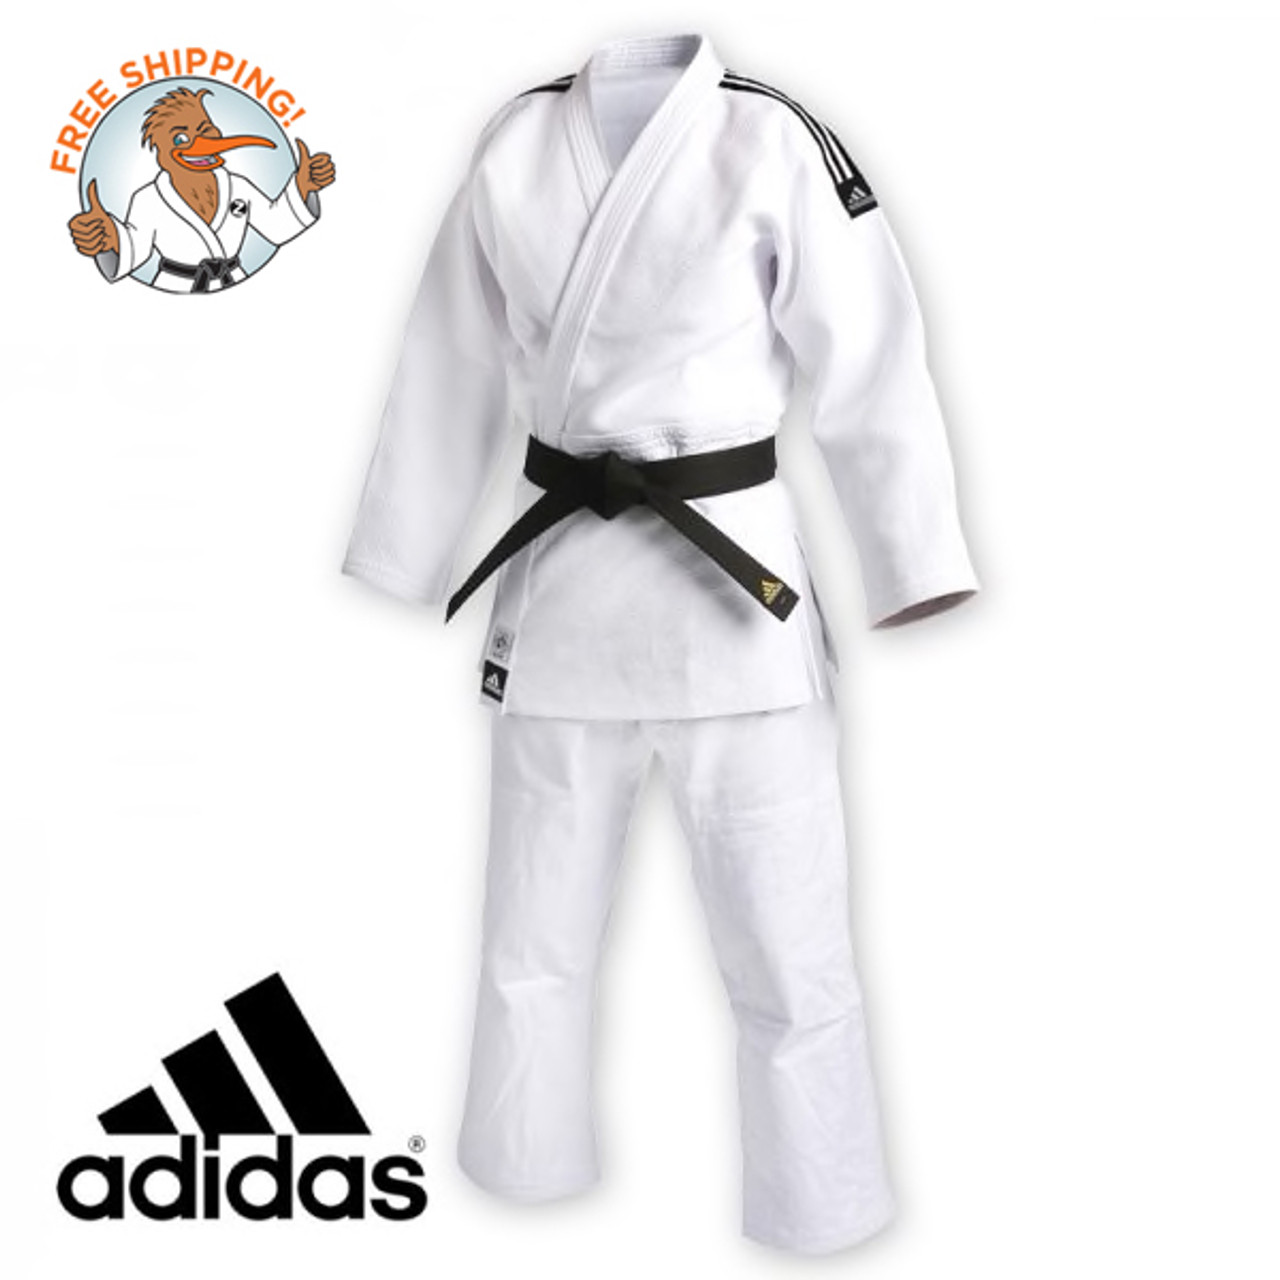 tirano menta papel  Adidas Judo Uniform - 930S IJF Competition Gi - White, 1 ONLY